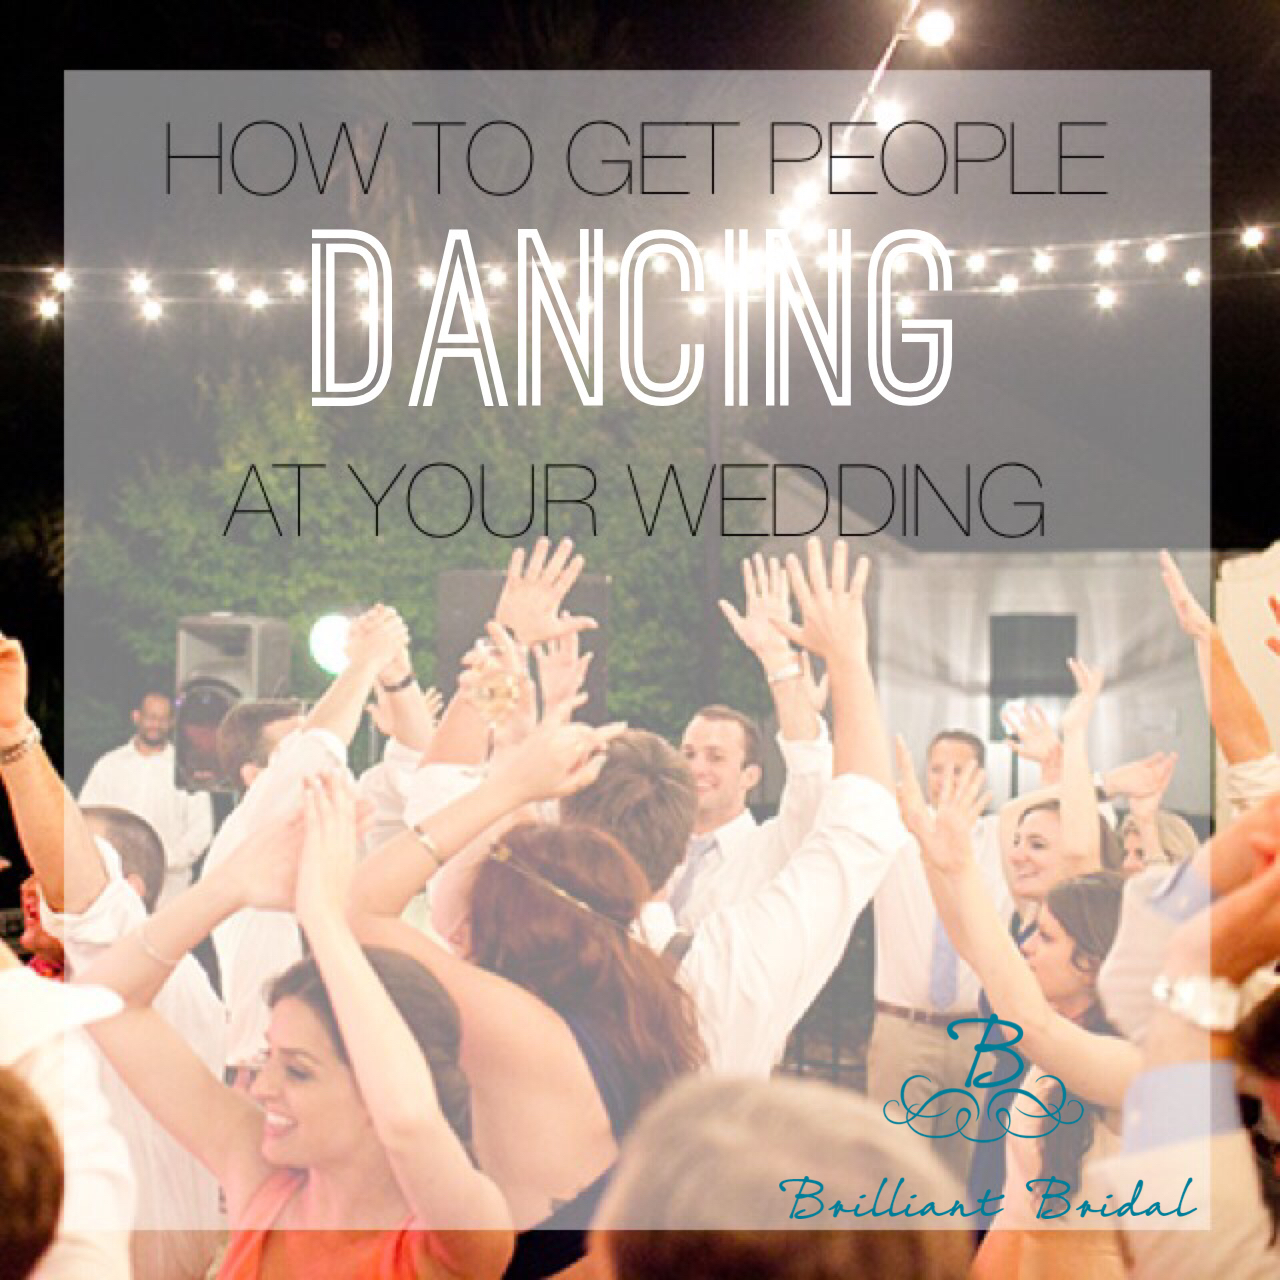 how to get people dancing at your wedding